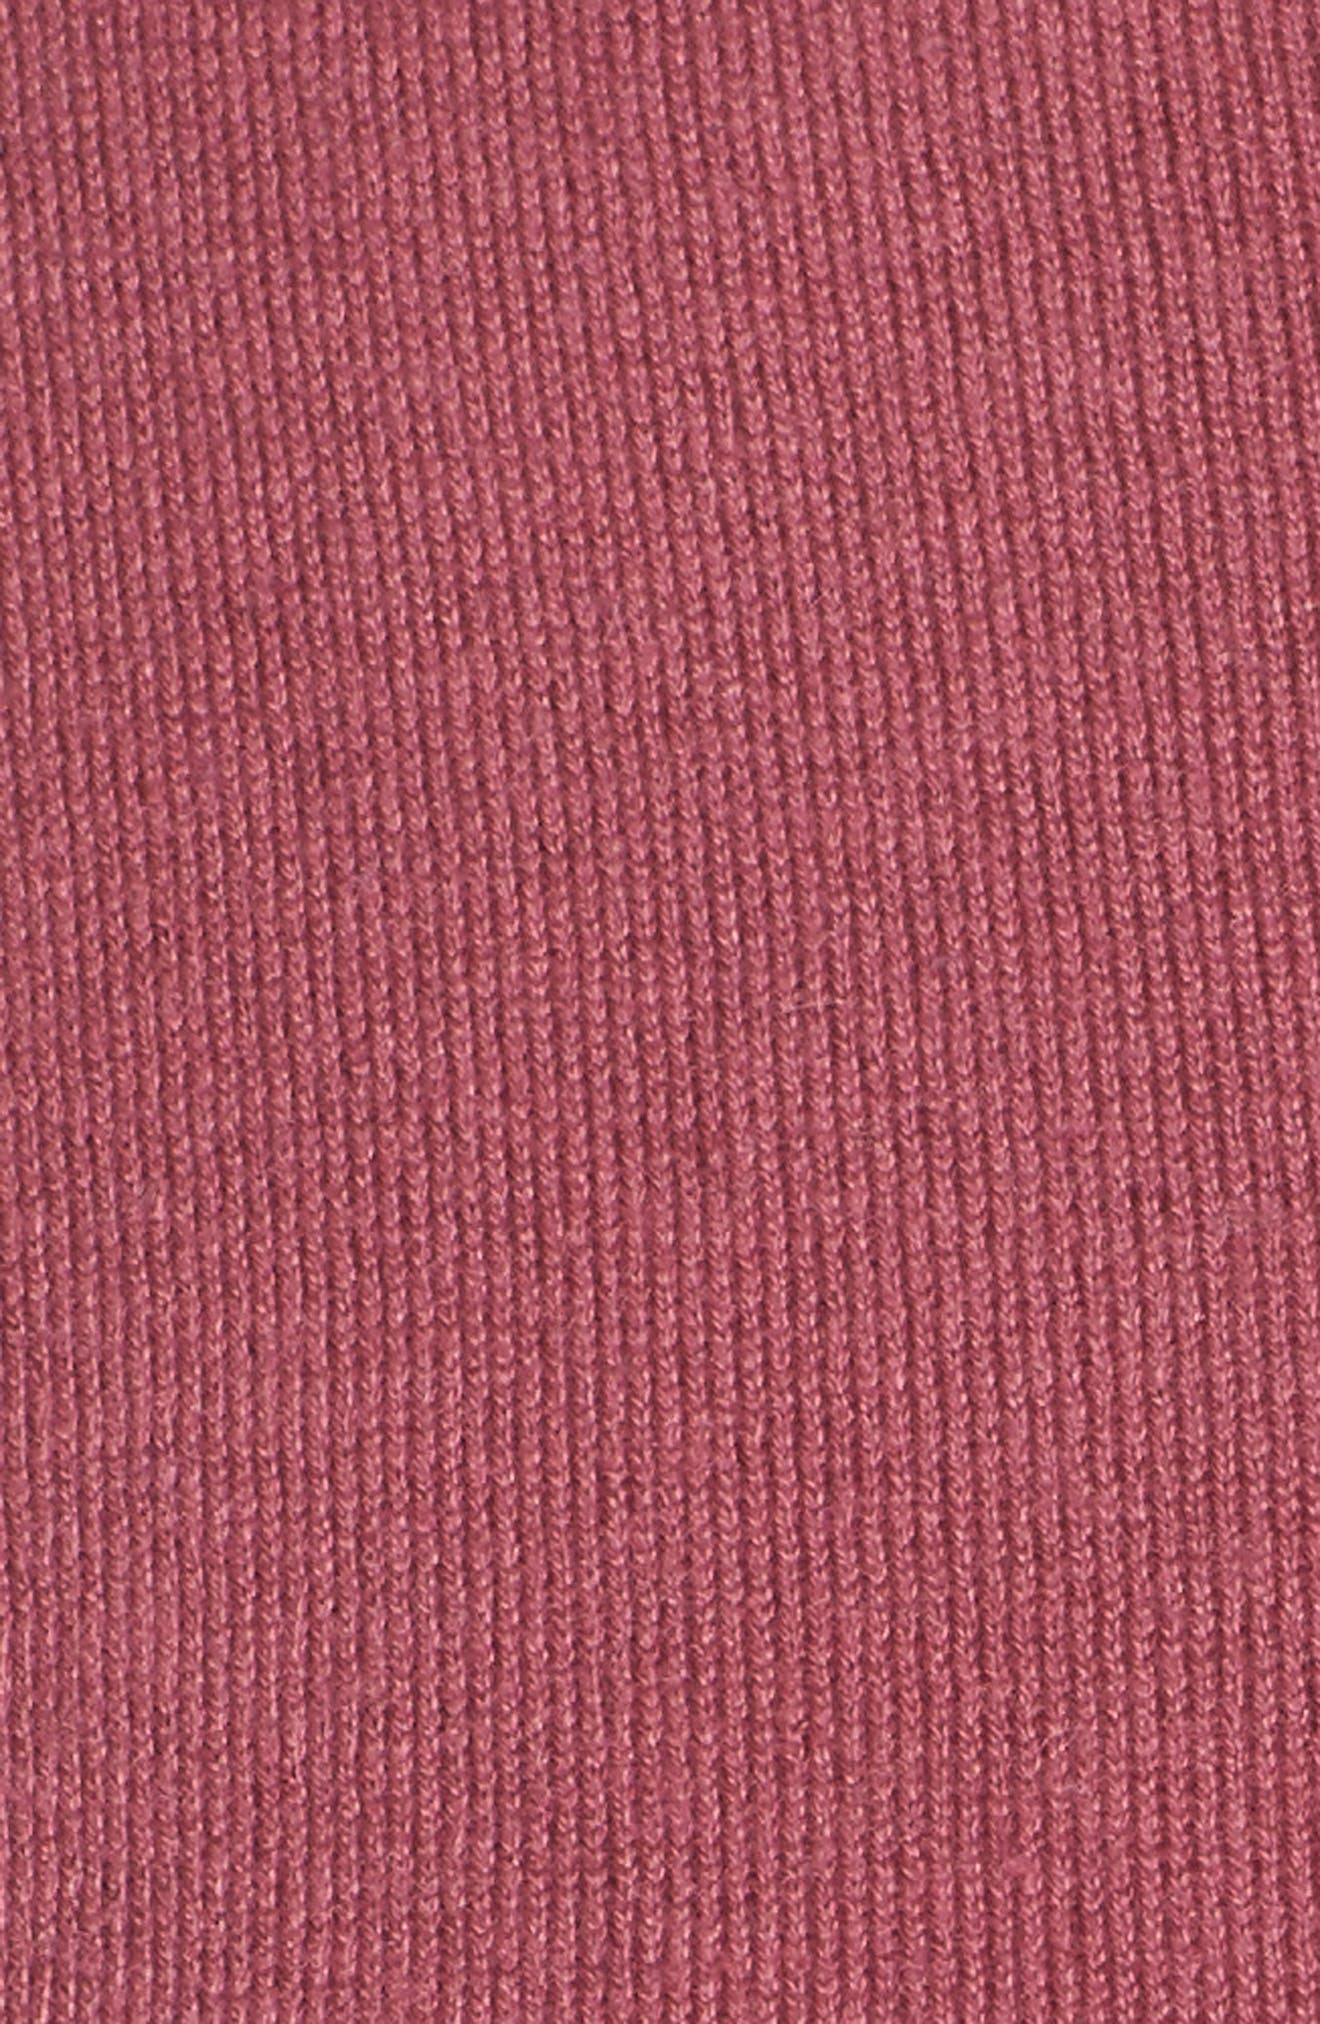 Relaxed Cotton & Cashmere Sweater,                             Alternate thumbnail 20, color,